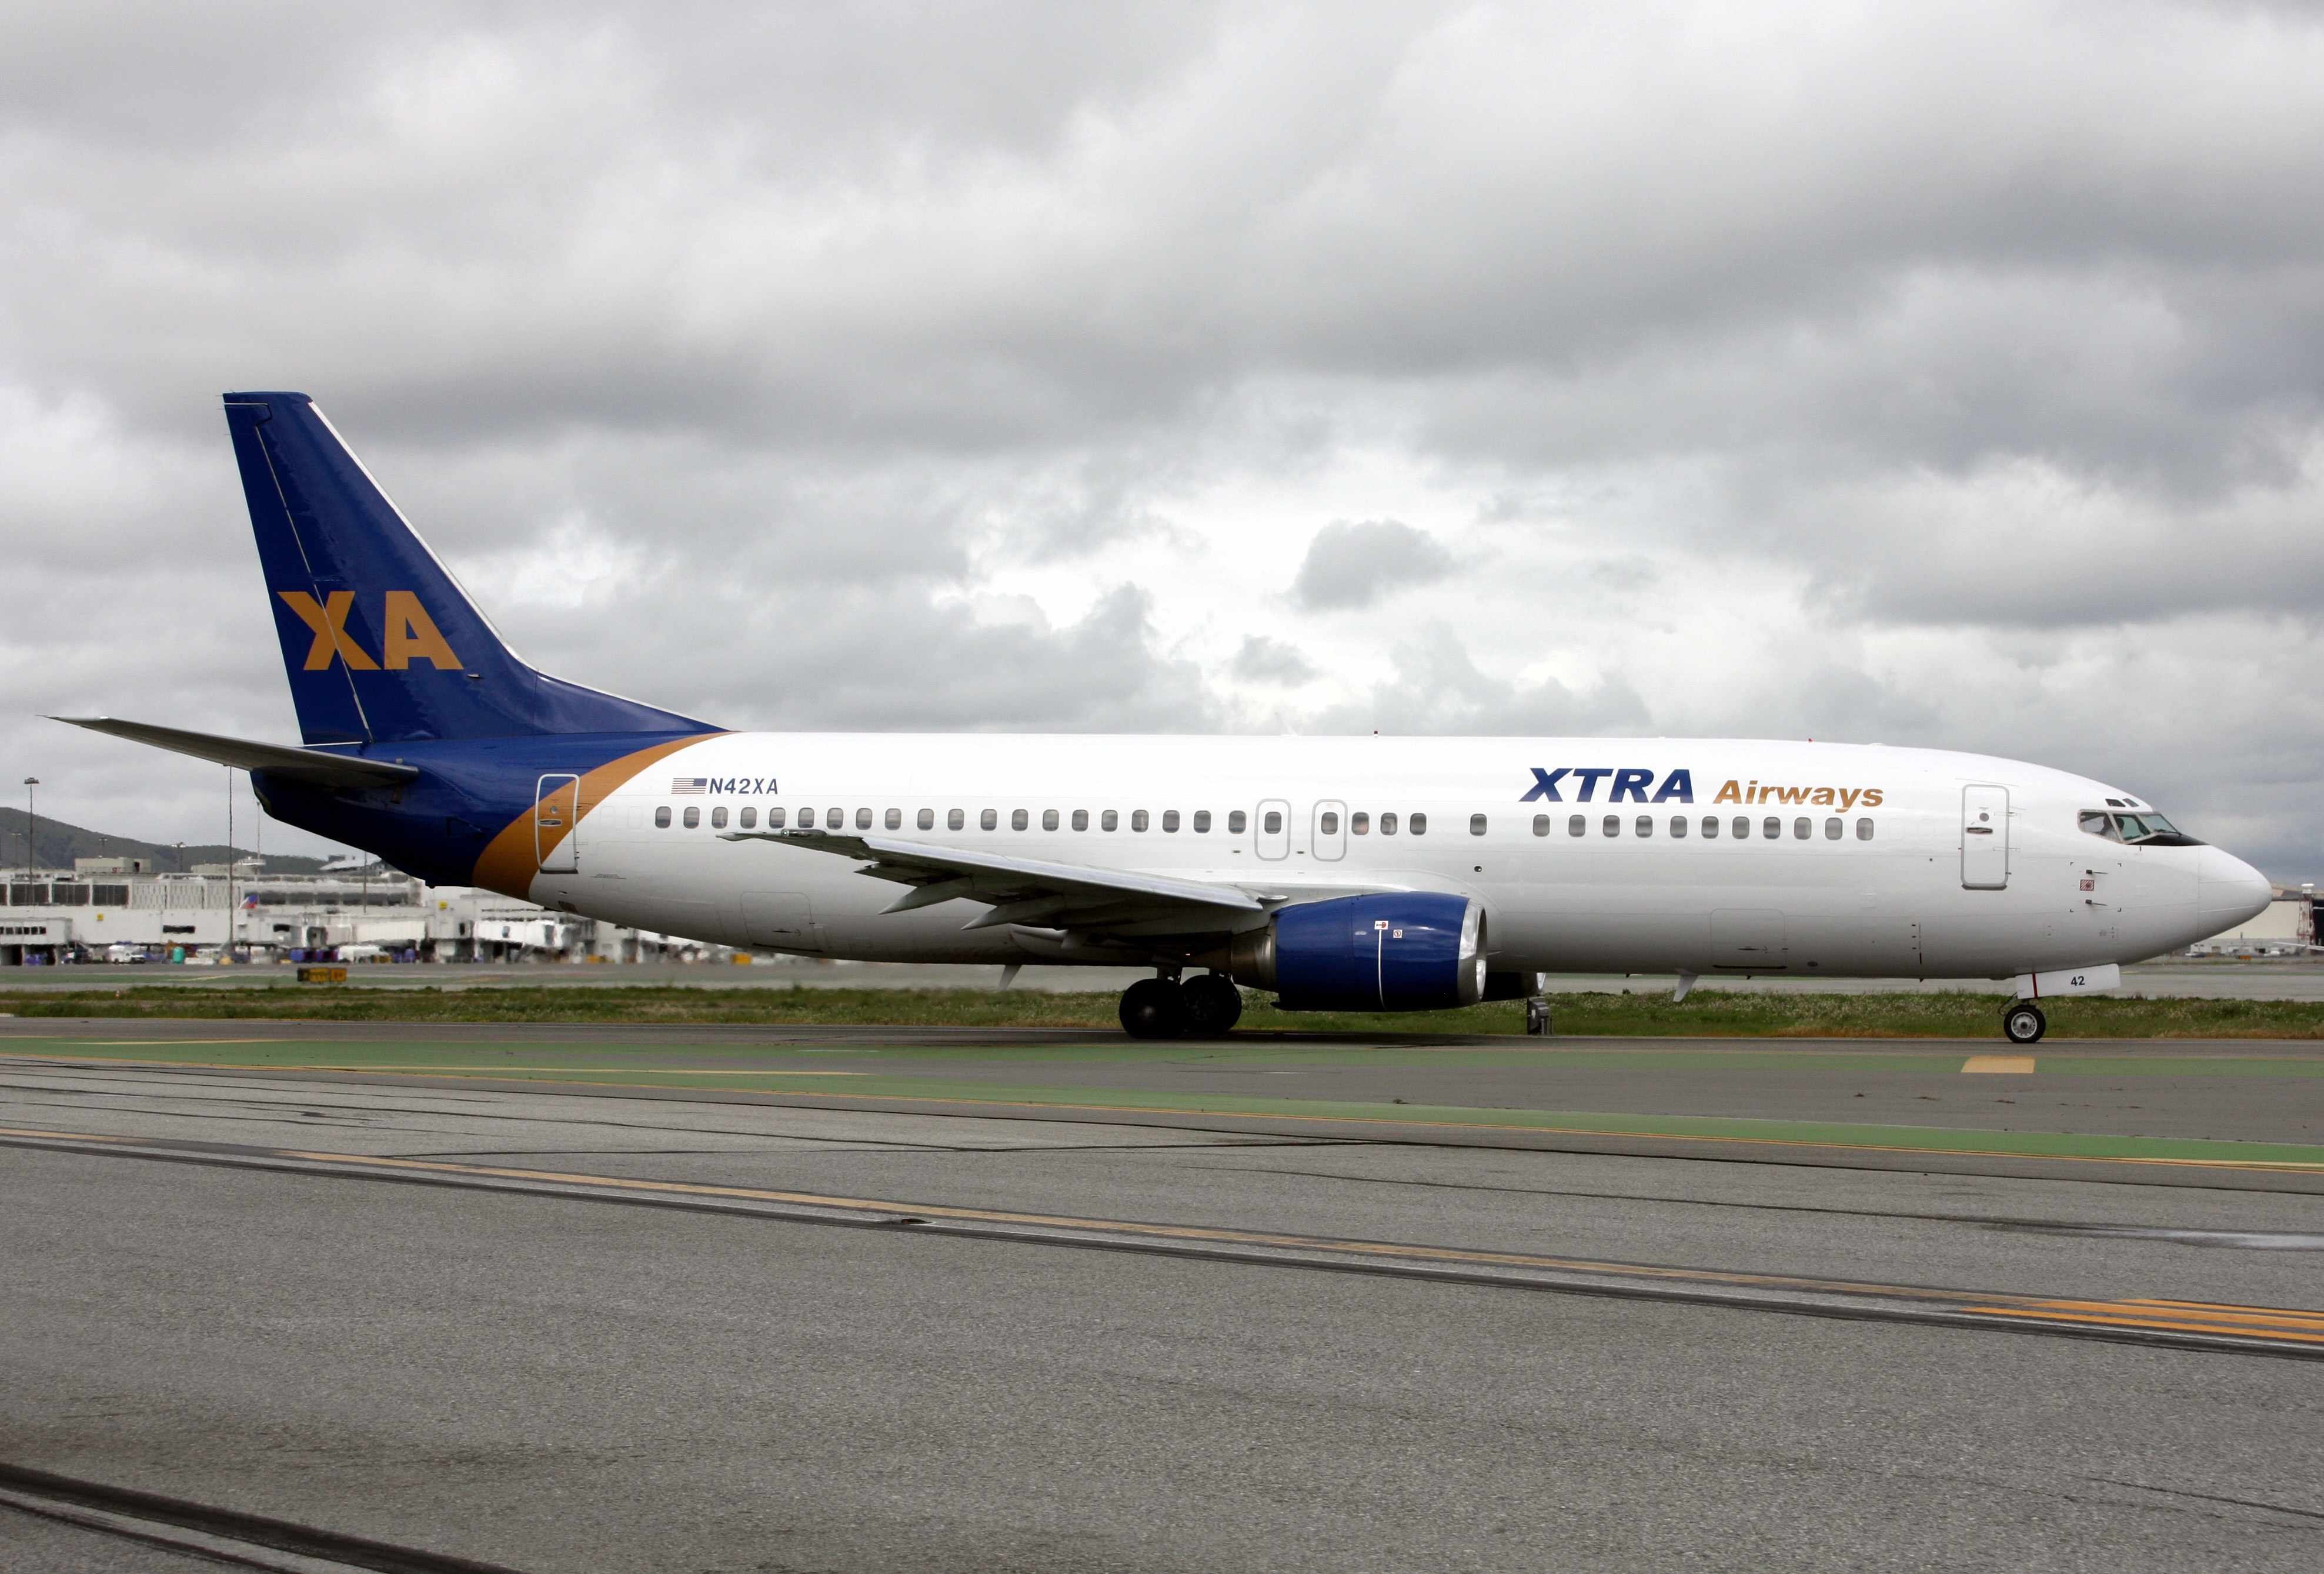 Boeing 737-429 N42XA (msn 25729) of Xtra Airways prepares to depart from San Francisco in the new look.  To see how N42XA was formerly painted please click on the photo.  Copyright Photo: Mark Durbin.